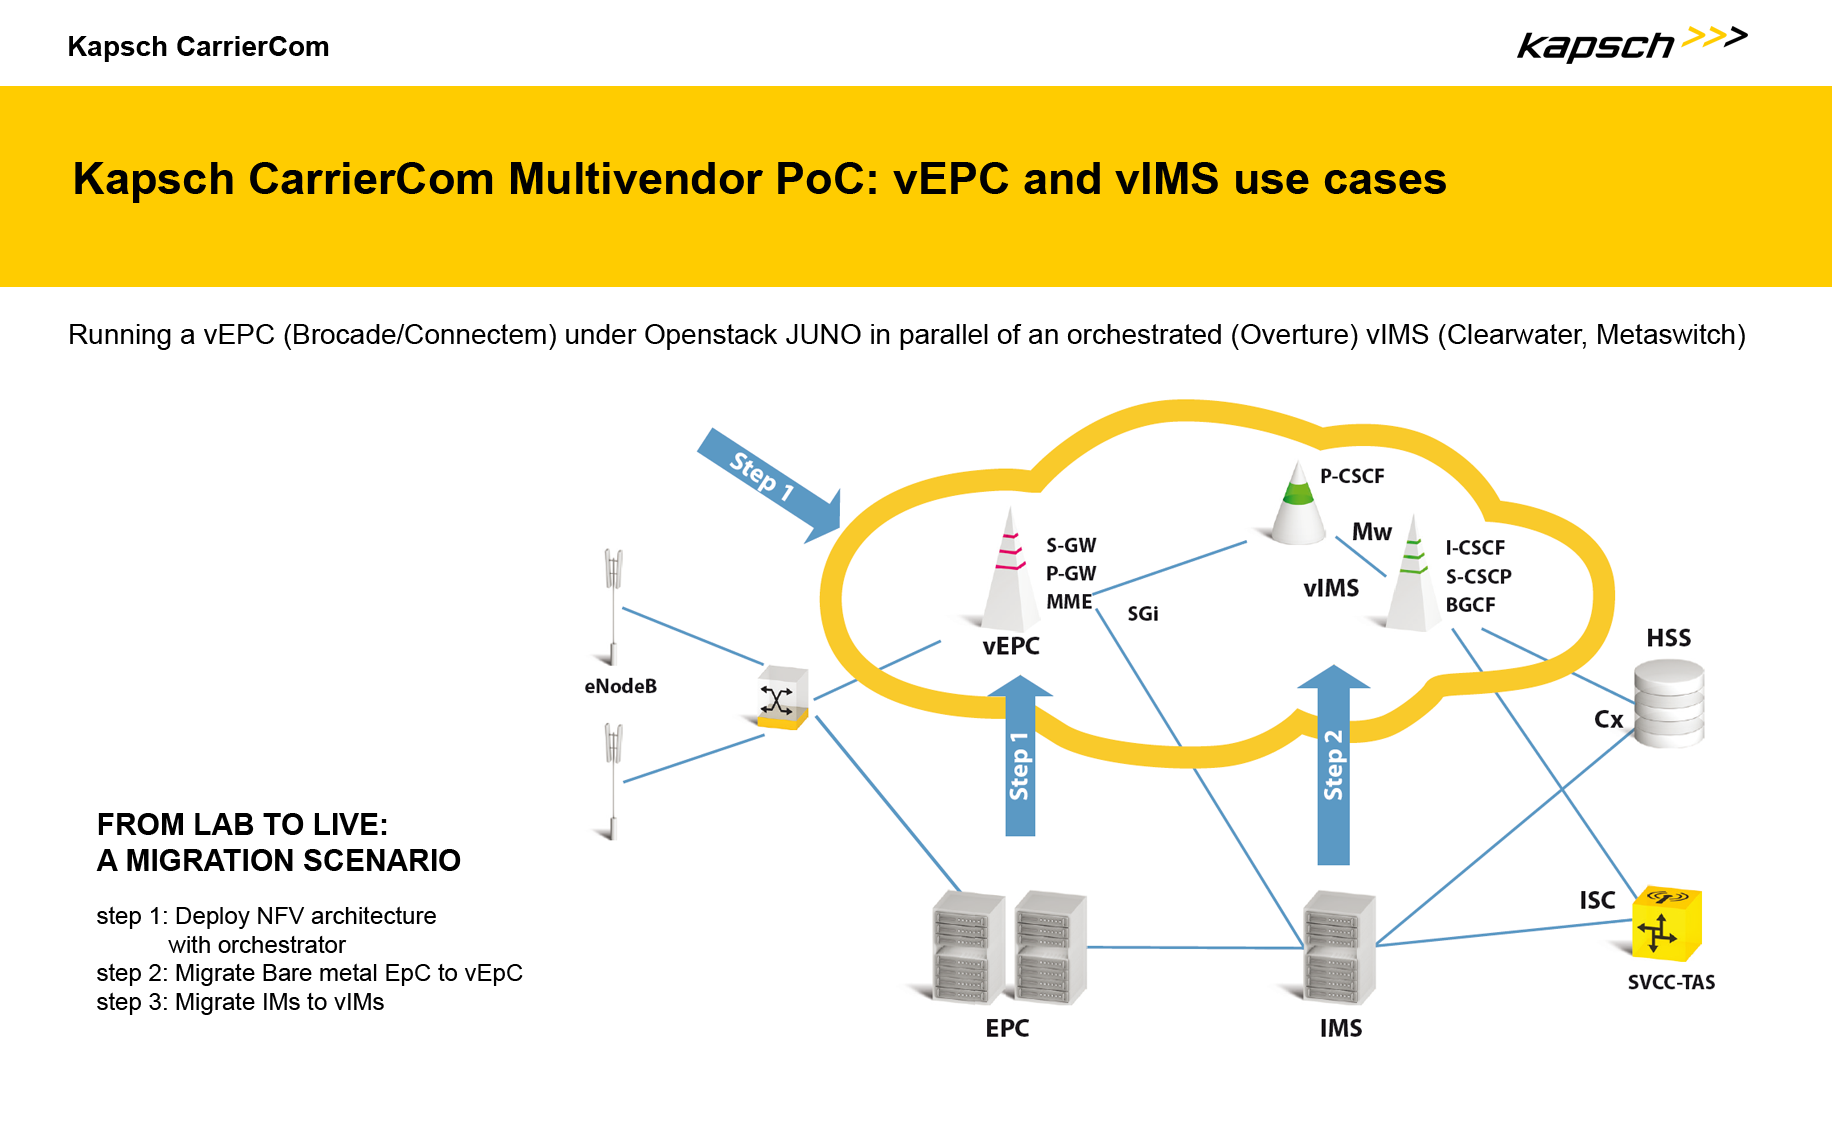 KCC Multivendor PoC Solution Diagram